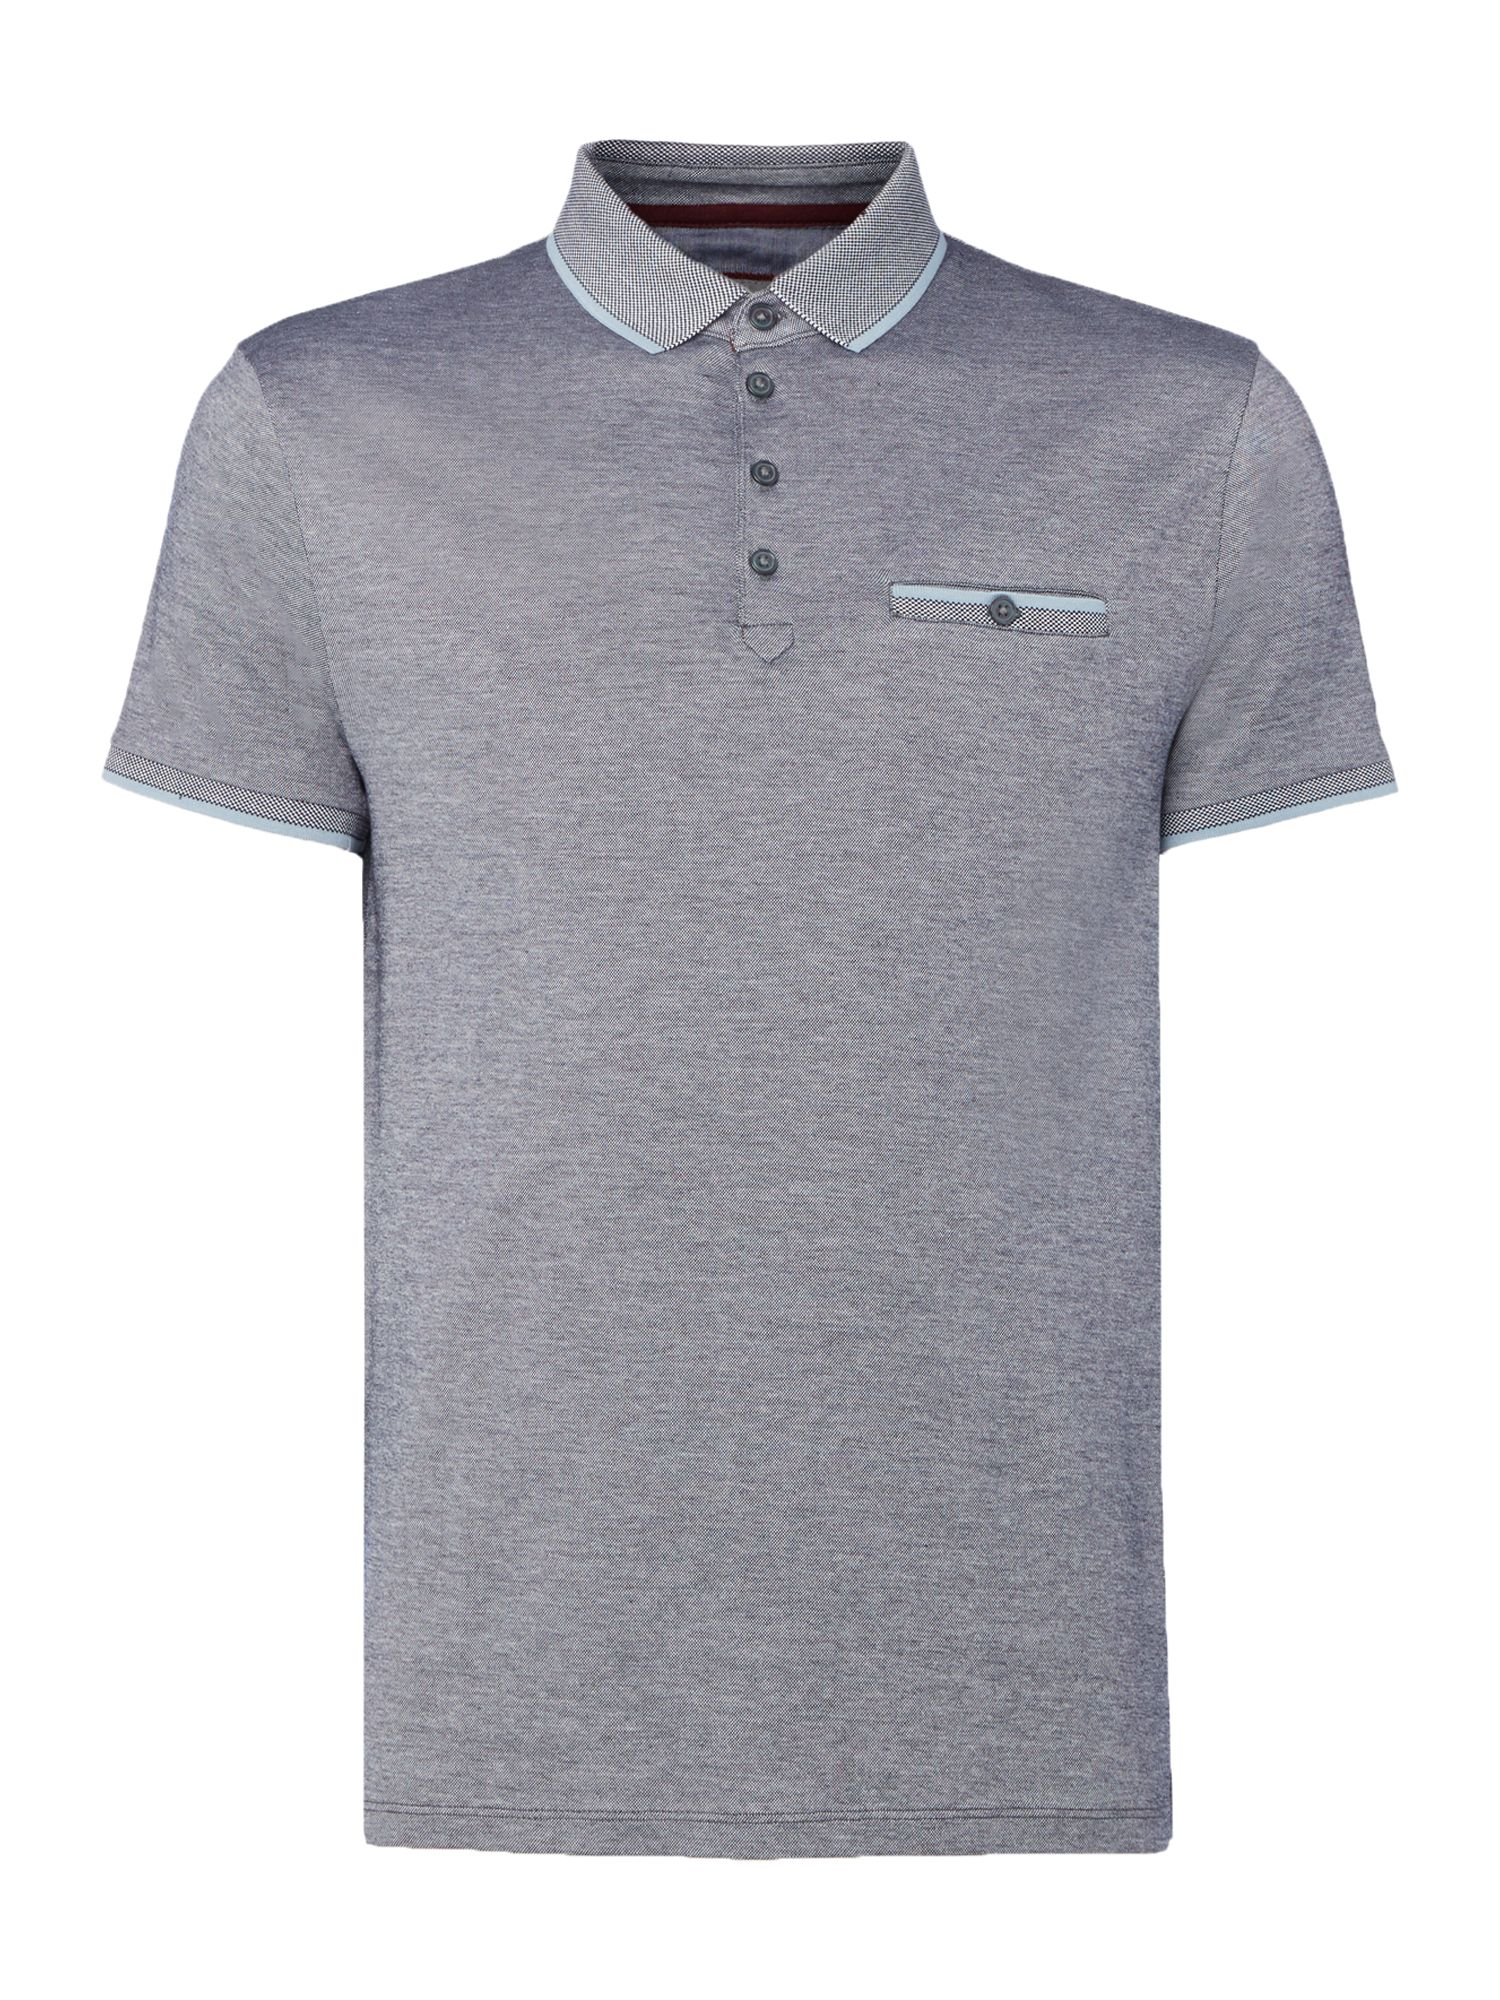 Men's Linea Islington Birdseye Polo Shirt, Blue